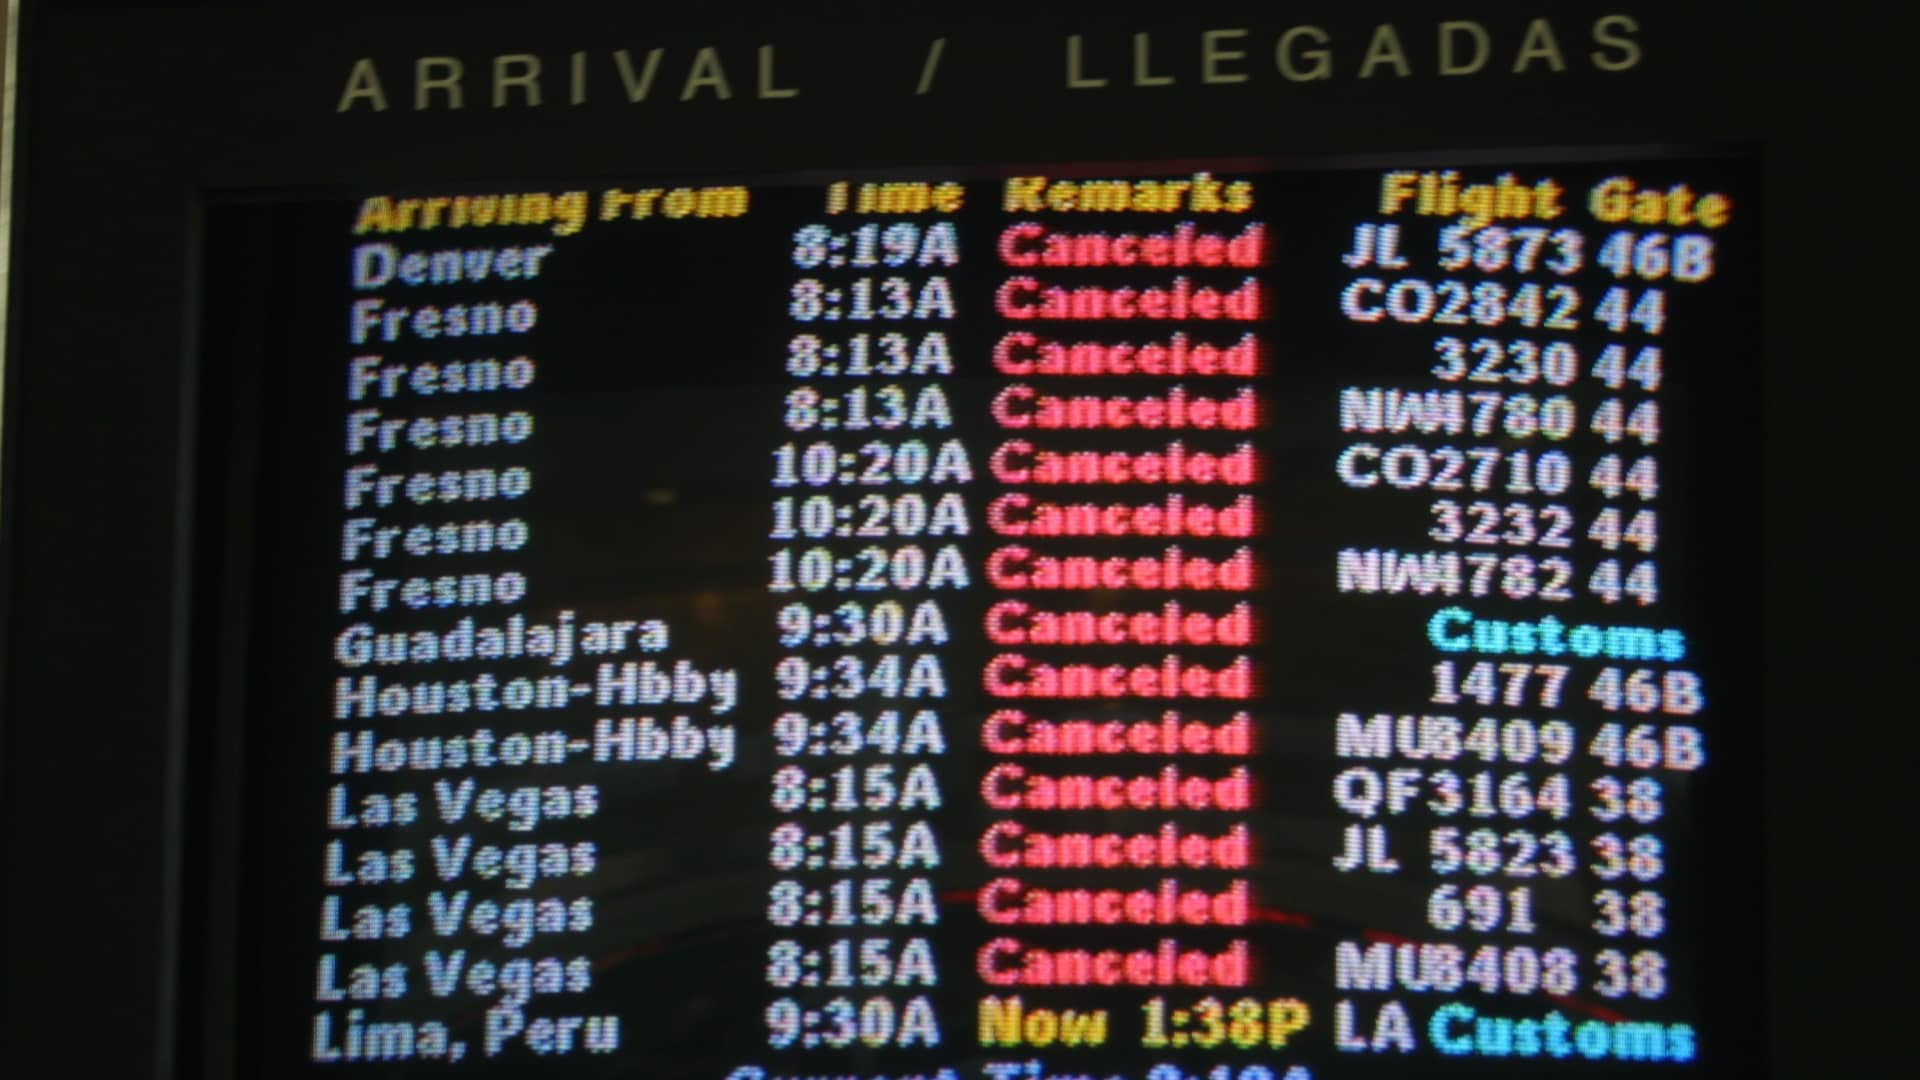 Cancelled flights are displayed on monitors at the Los Angeles Airport terminal September 10, 2001 in Los Angeles, CA.